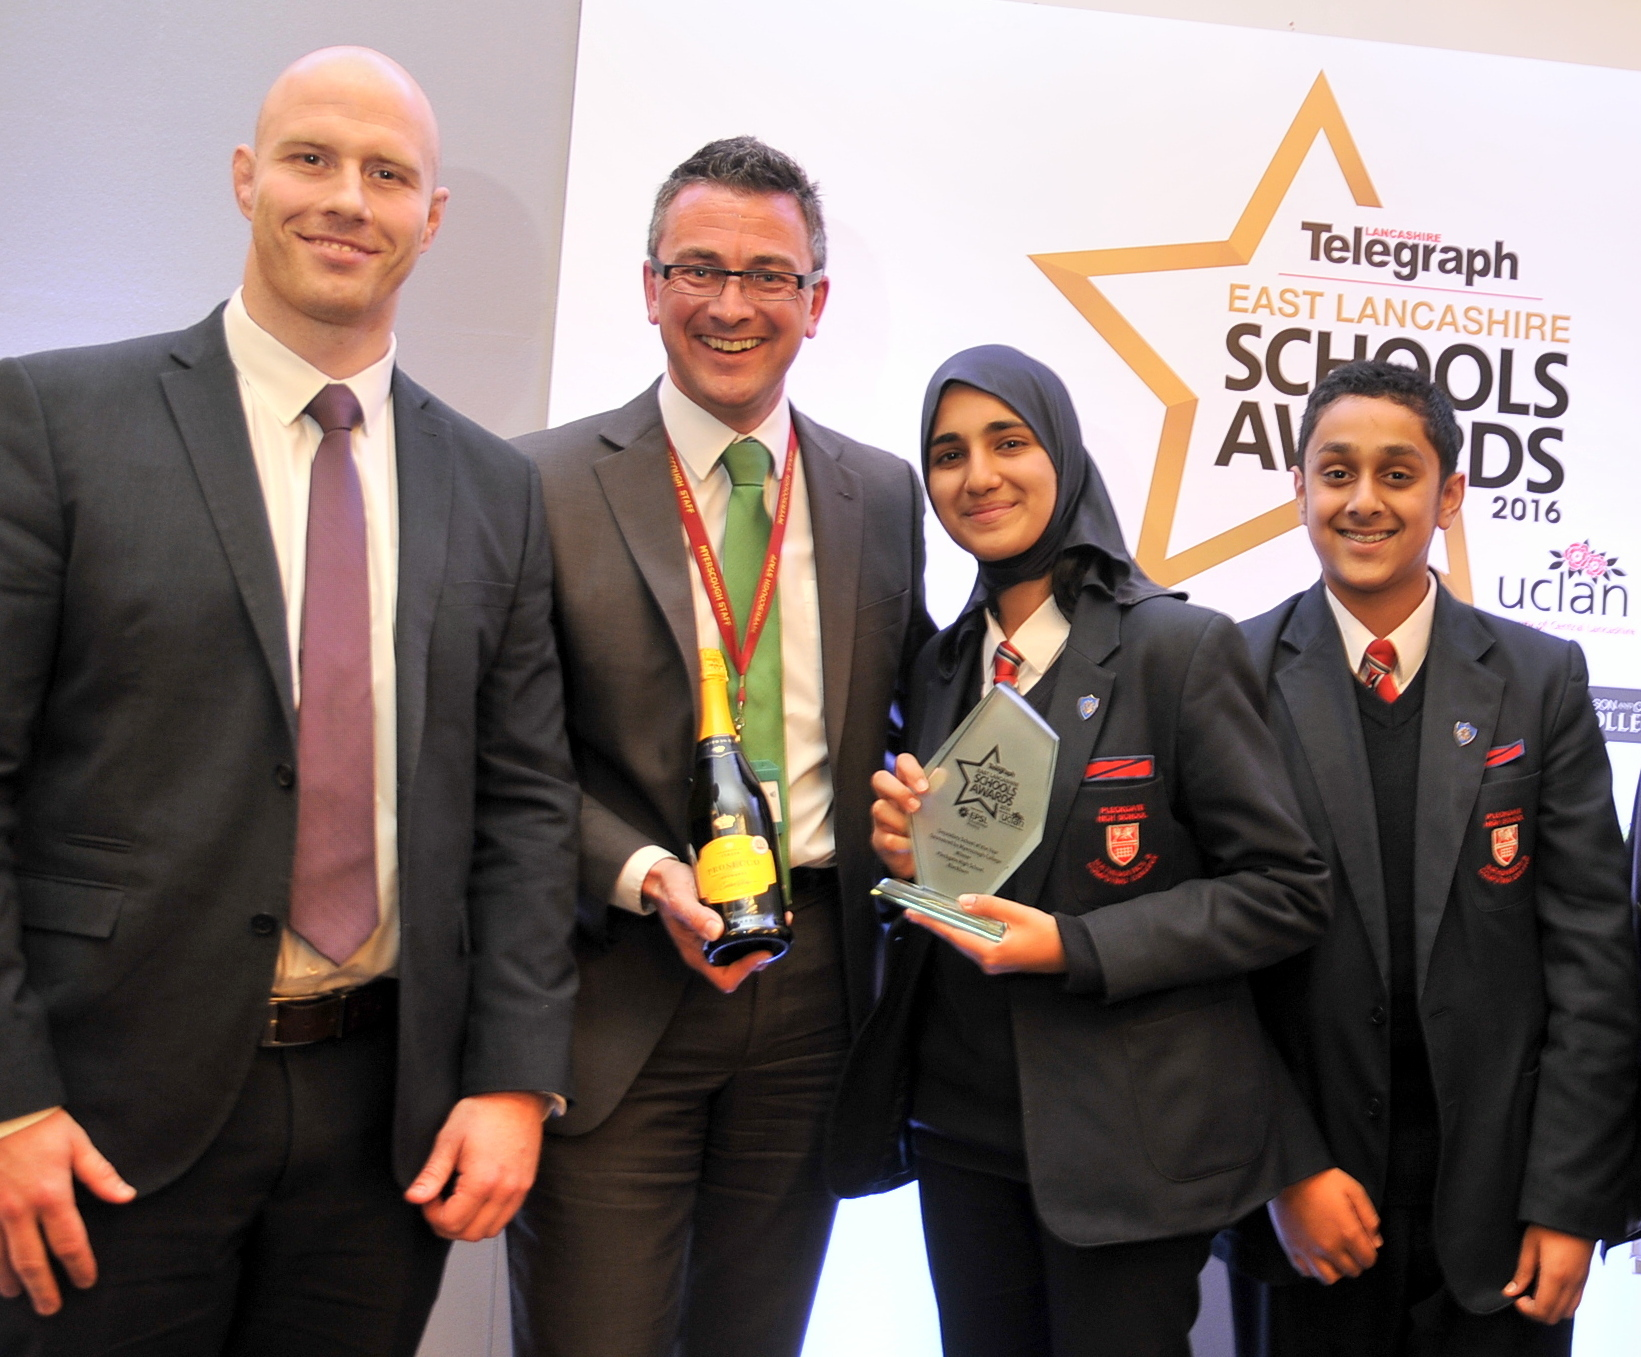 From left, Mark Cooper, Stuart Davidson (Myerscough College), Aysha Dagra and Abbaas Shakil and the Secondary School of the Year Award for Pleckgate High School.